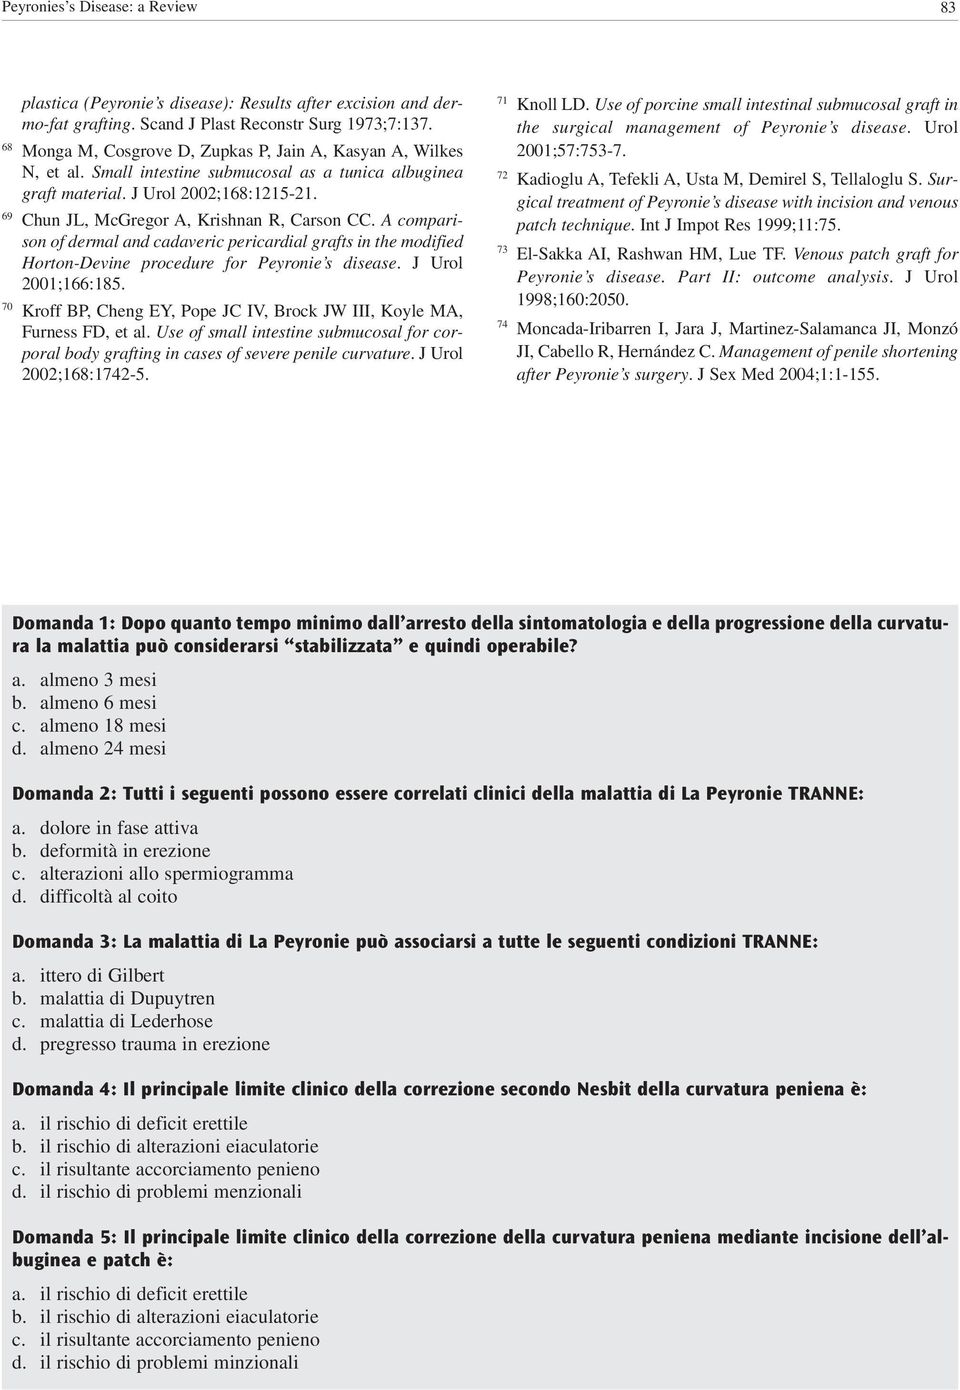 69 Chun JL, McGregor A, Krishnan R, Carson CC. A comparison of dermal and cadaveric pericardial grafts in the modified Horton-Devine procedure for Peyronie s disease. J Urol 2001;166:185.